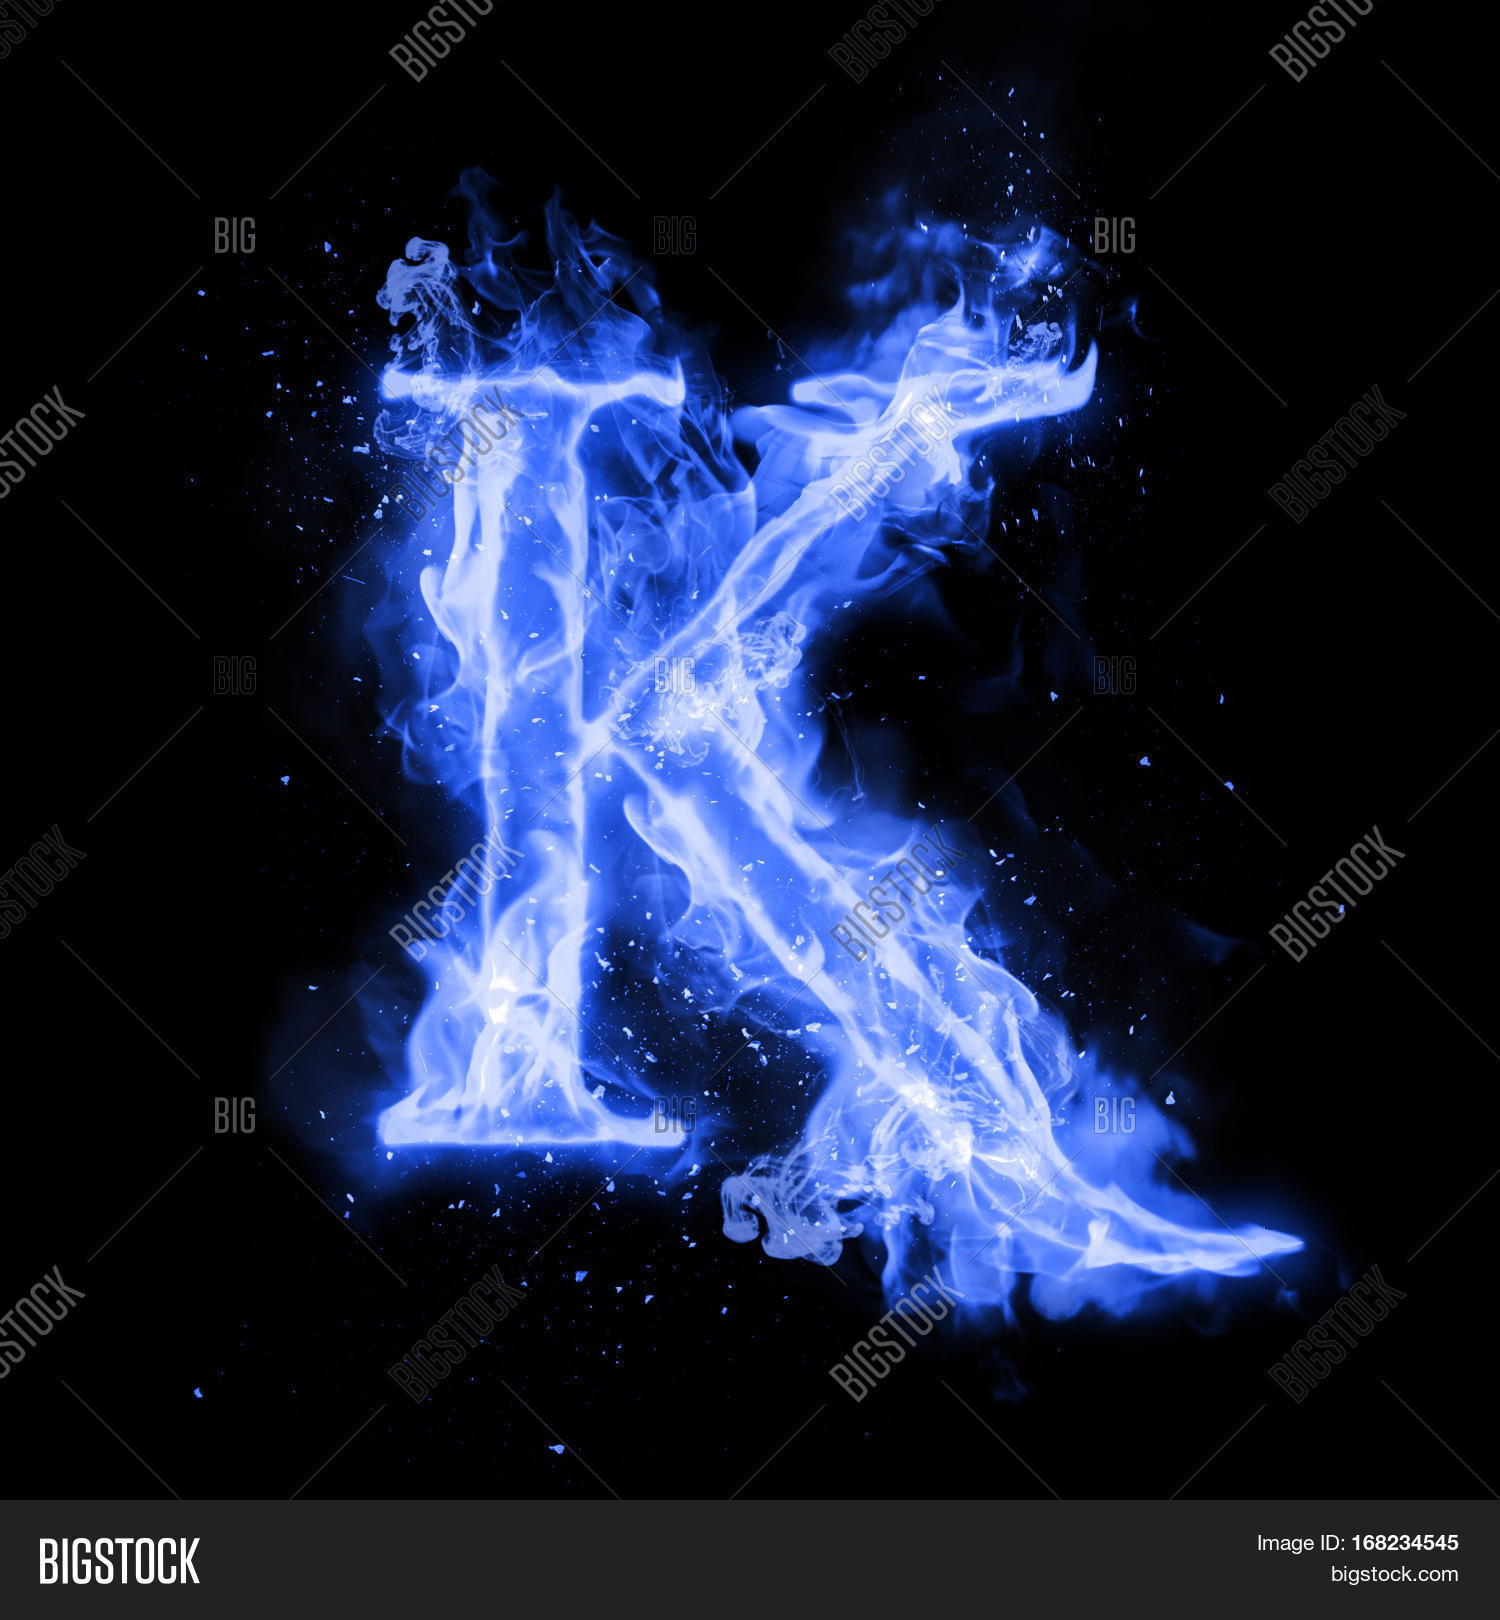 Fire Letter K Burning Image Photo Free Trial Bigstock